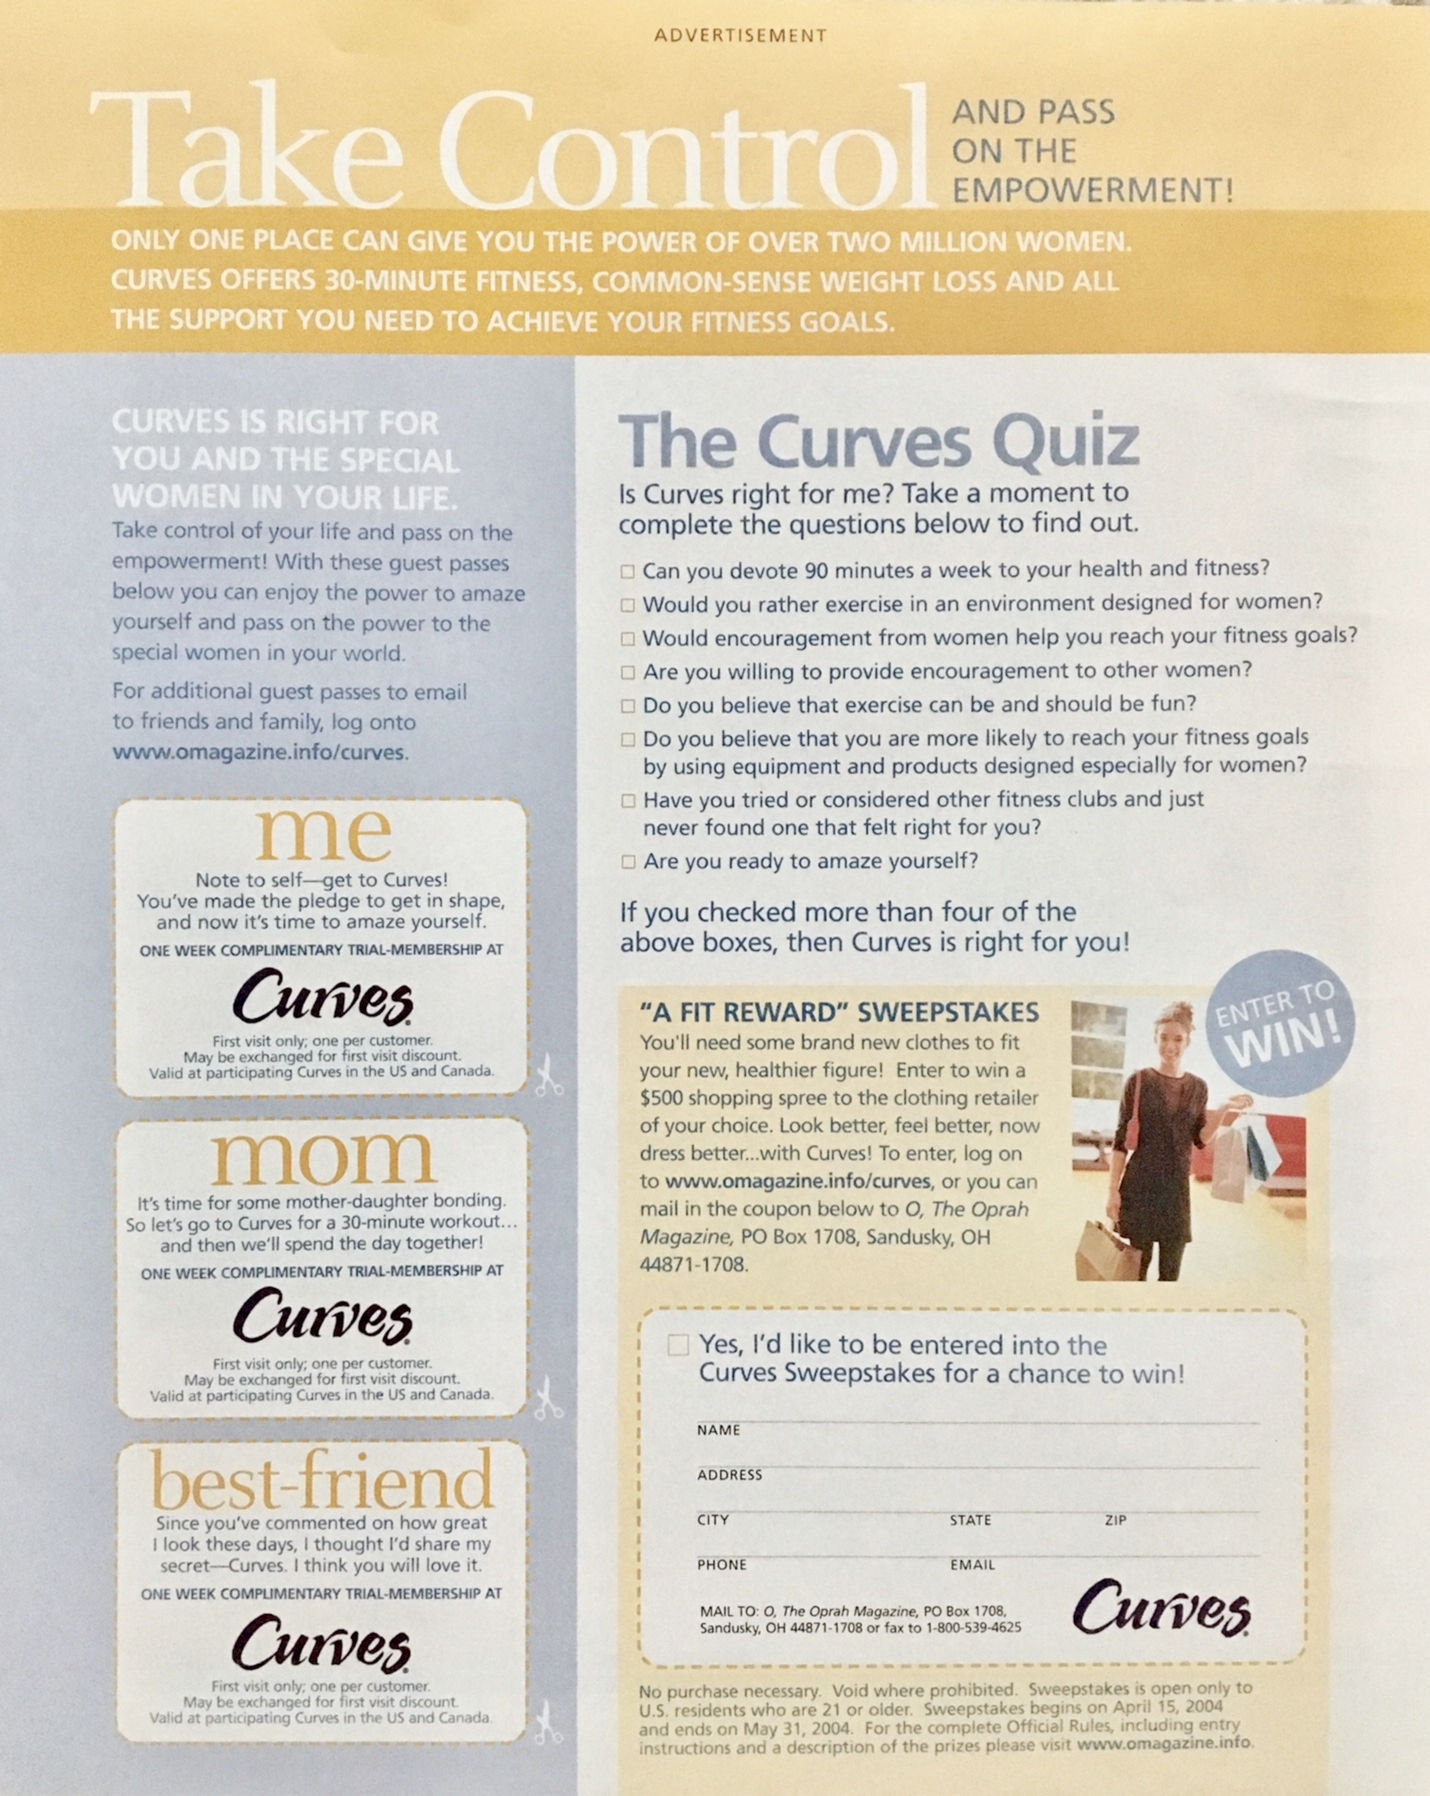 SPONSORED CONTENT, CURVES FOR O, THE OPRAH MAGAZINE   DEVELOPED FOR O, THE OPRAH MAGAZINE READERS, THIS CONTENT ENCOURAGED ENGAGEMENT THROUGH QUIZZES AND SWEEPSTAKES